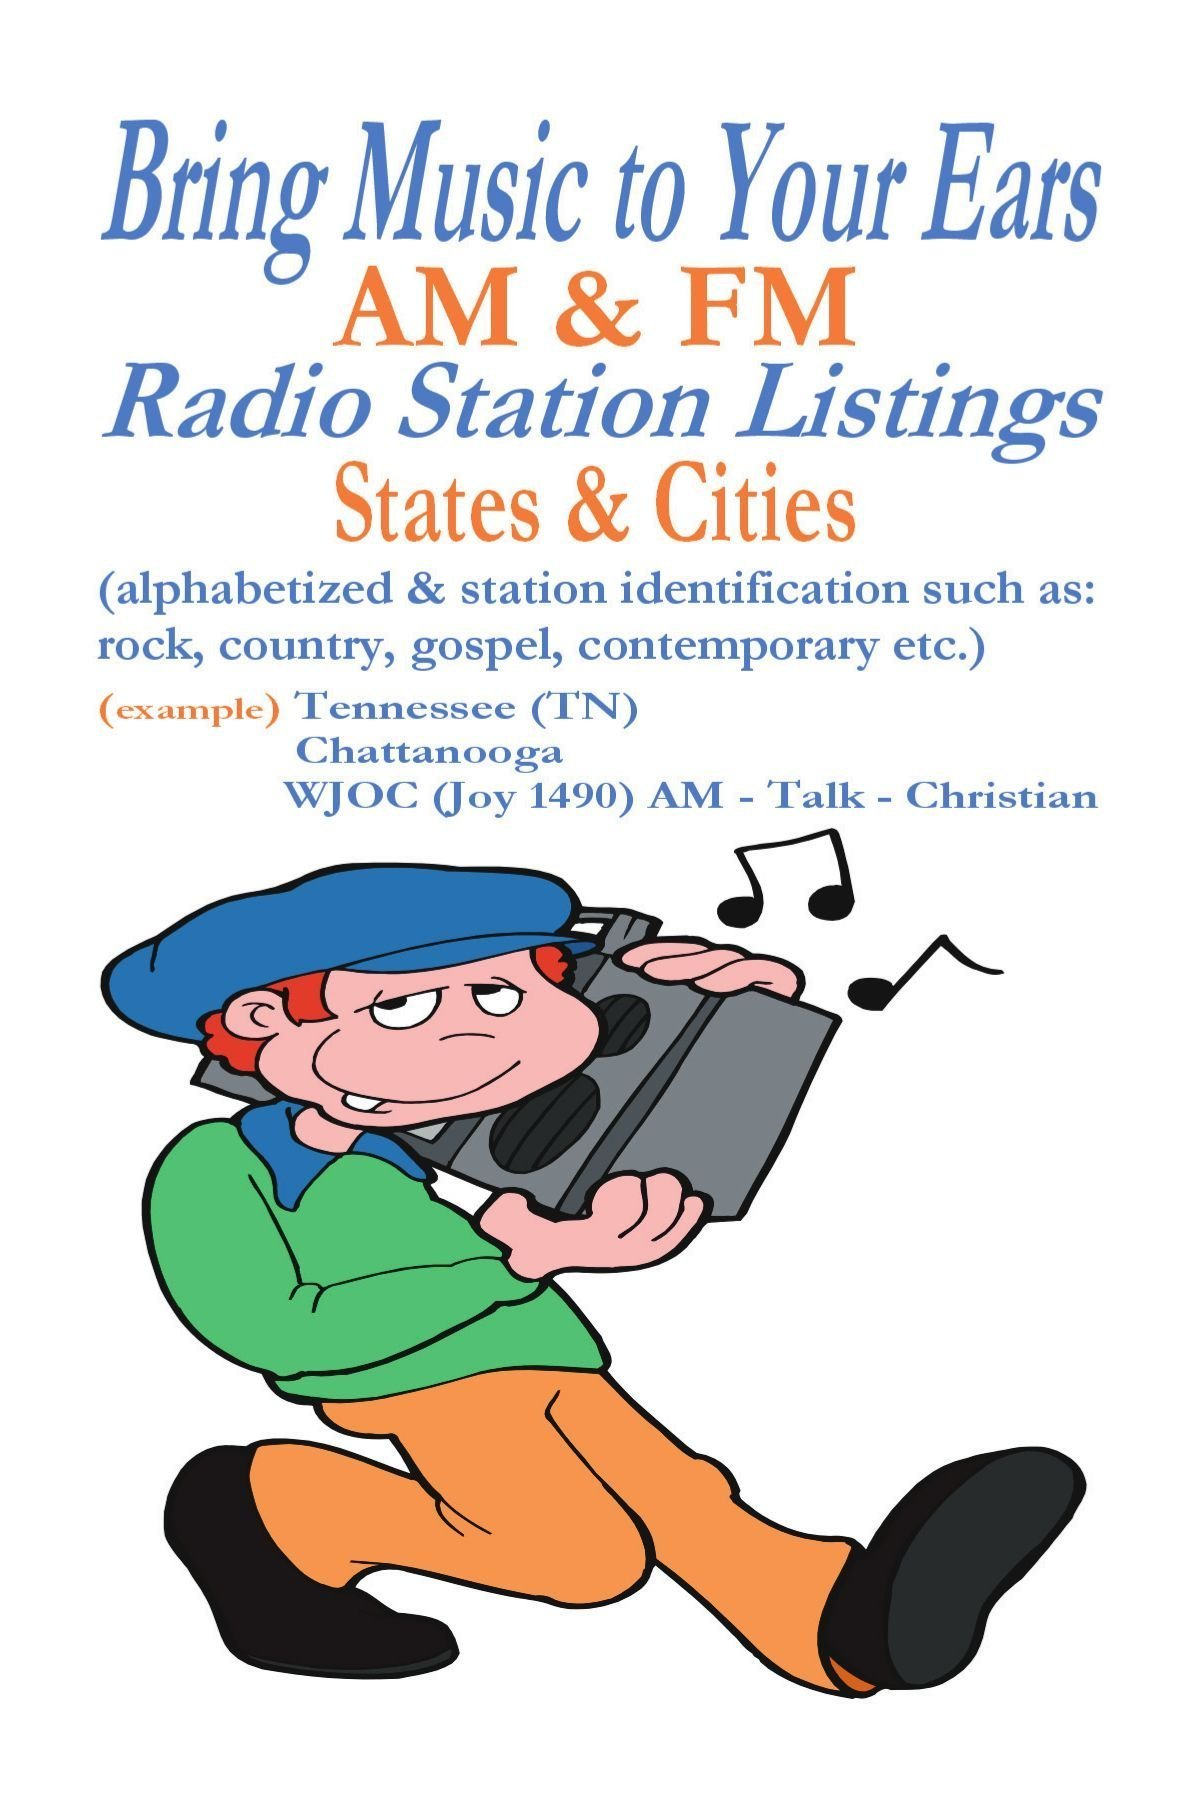 Bring Music to Your Ears: AM & FM Radio Station Listings